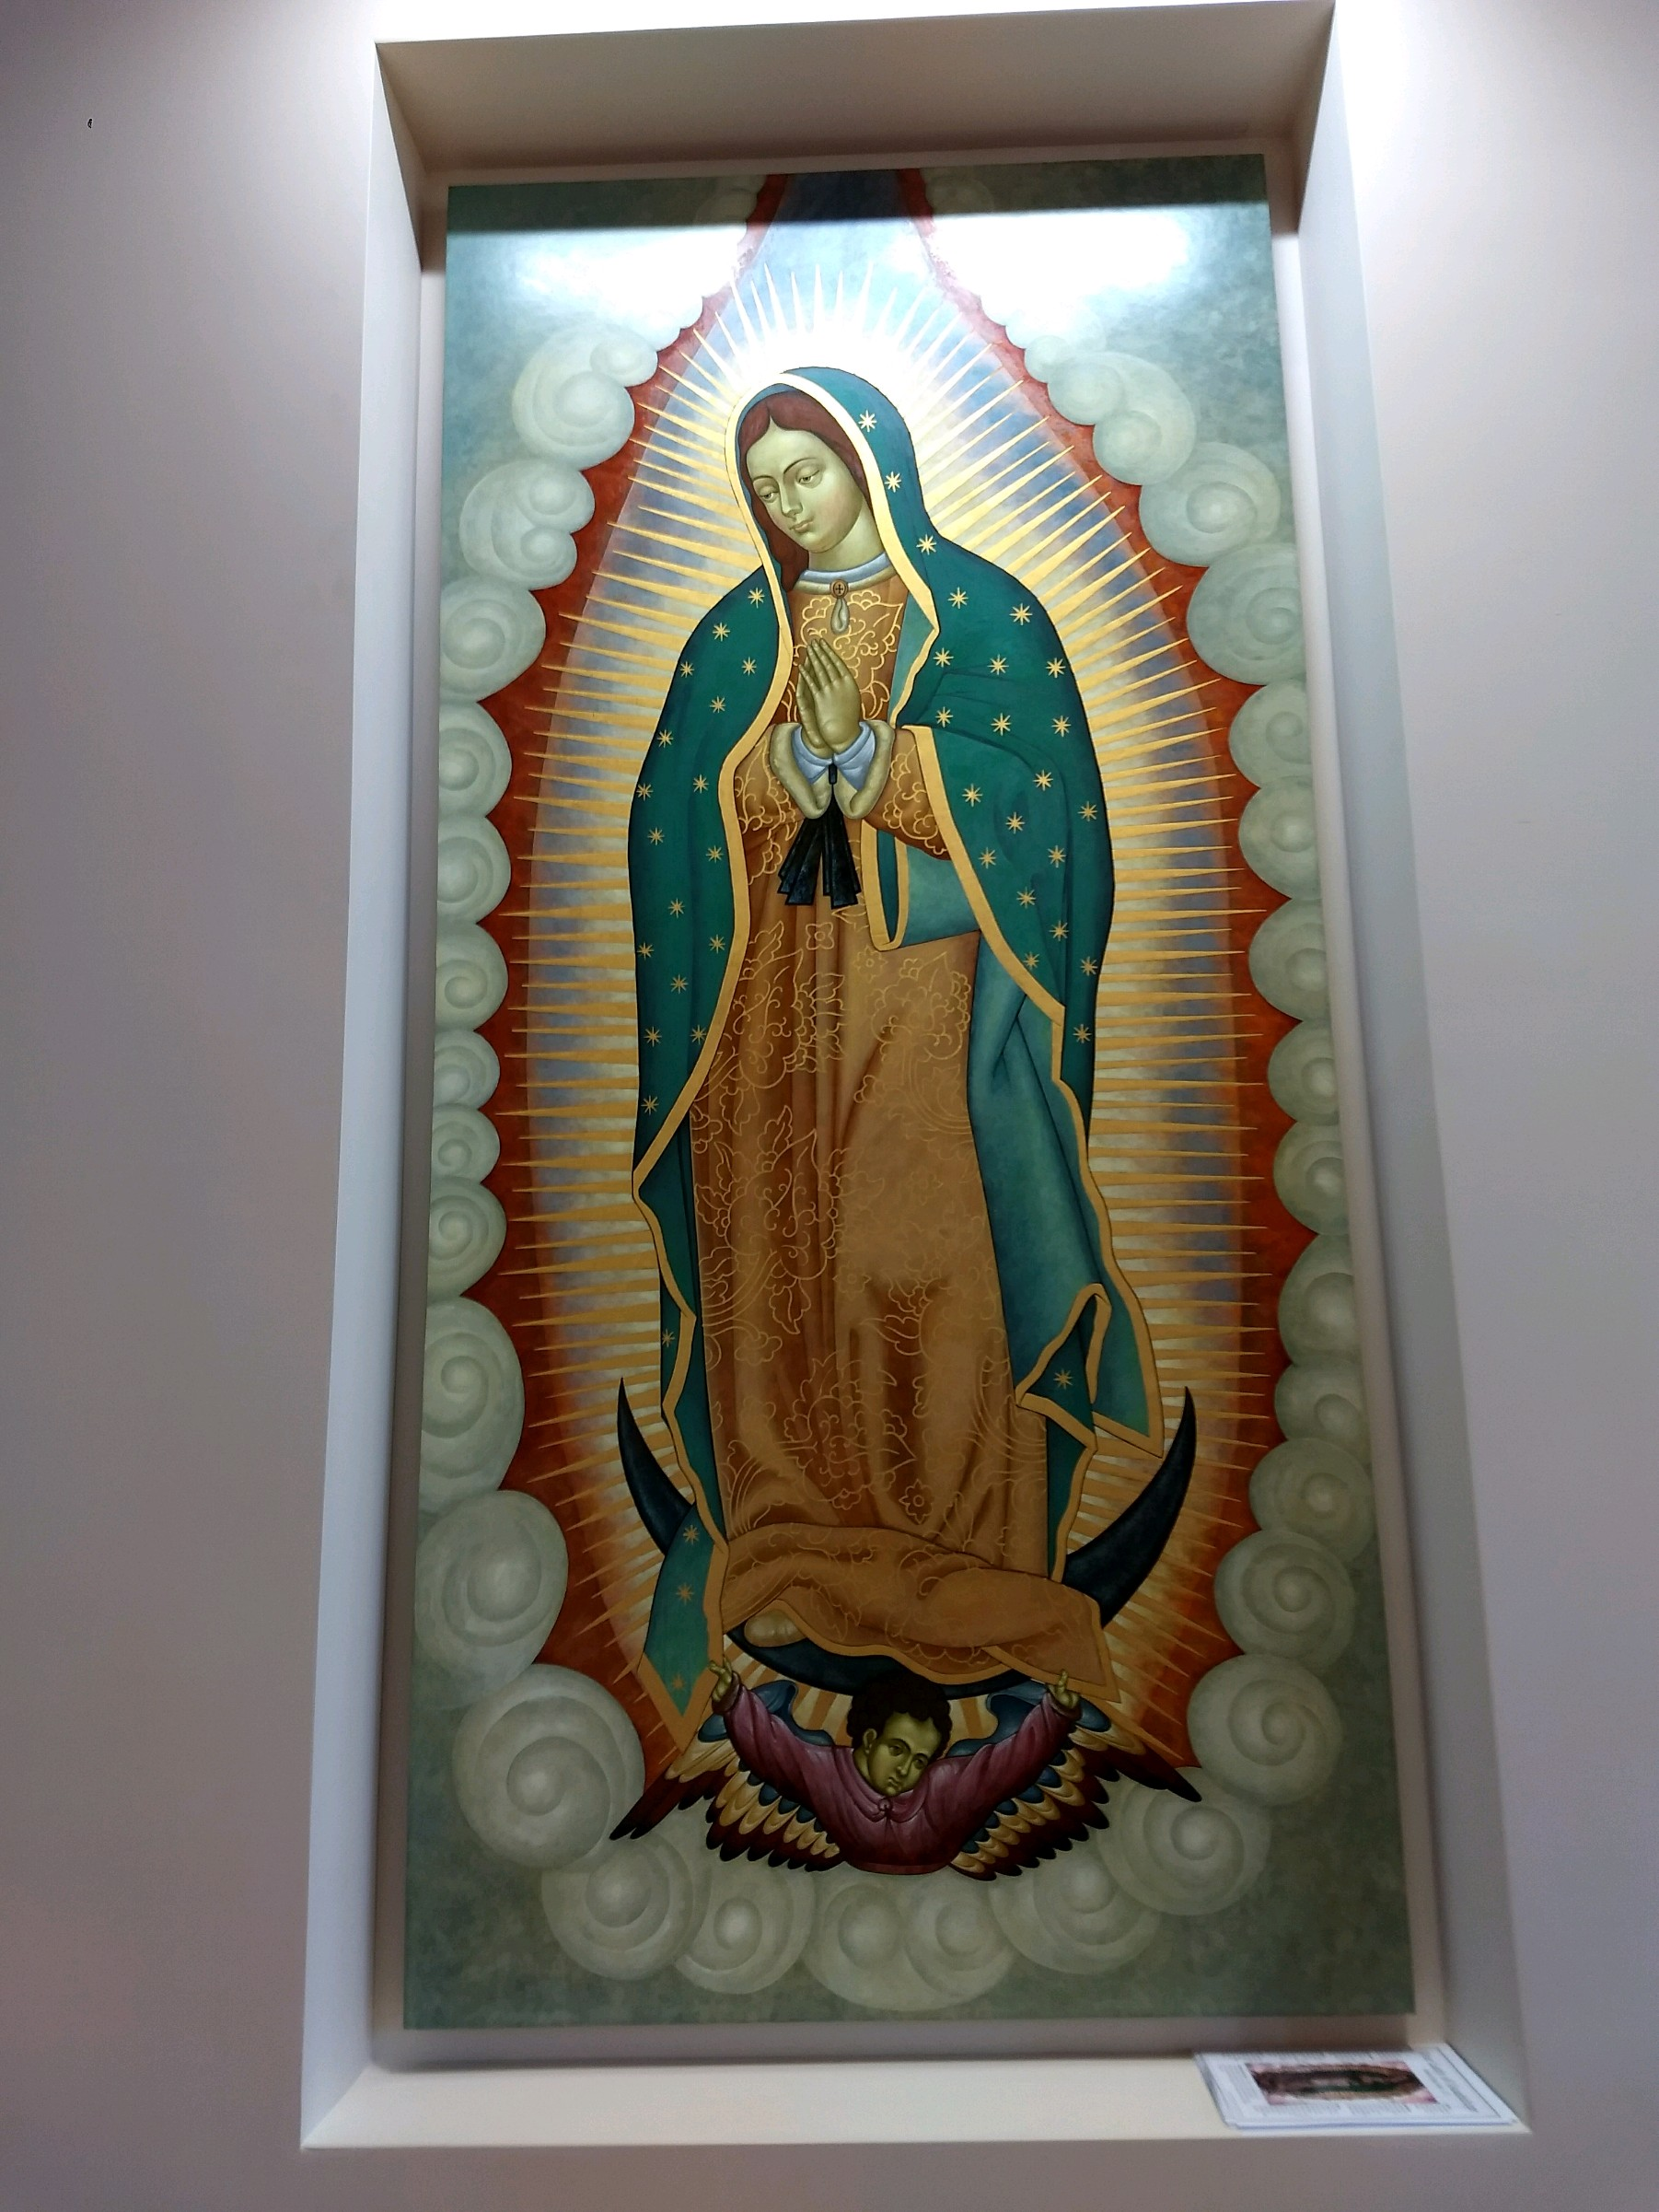 March 11  ·  Edited  ·   Our Lady of Guadalupe by a local artist. I never would've believed it, but this lady likes to show up and make people smell roses, or have random roses show up in places like straight out of the ocean. Pretty interesting story if you've never heard it. I hadn't until after we started getting multiple signs involving roses.